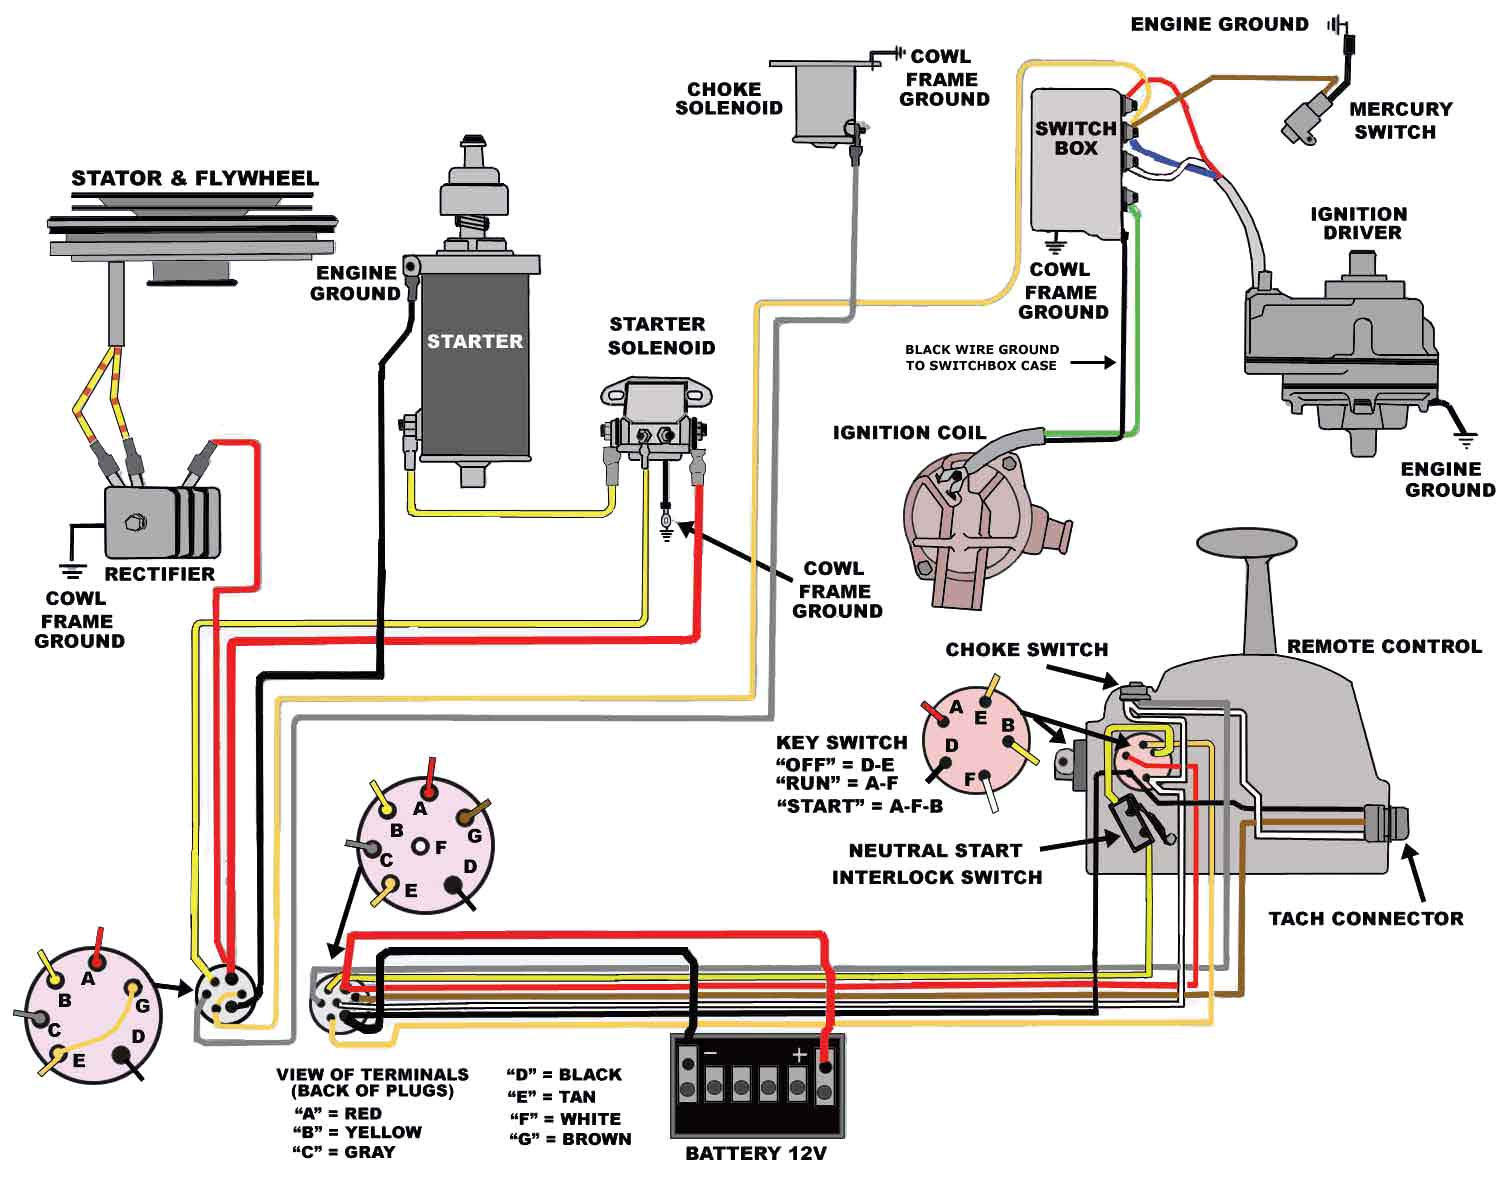 wiring & engine diagram | wiring & engine diagrams mercury marine ignition wiring diagram mercury ignition wiring diagram